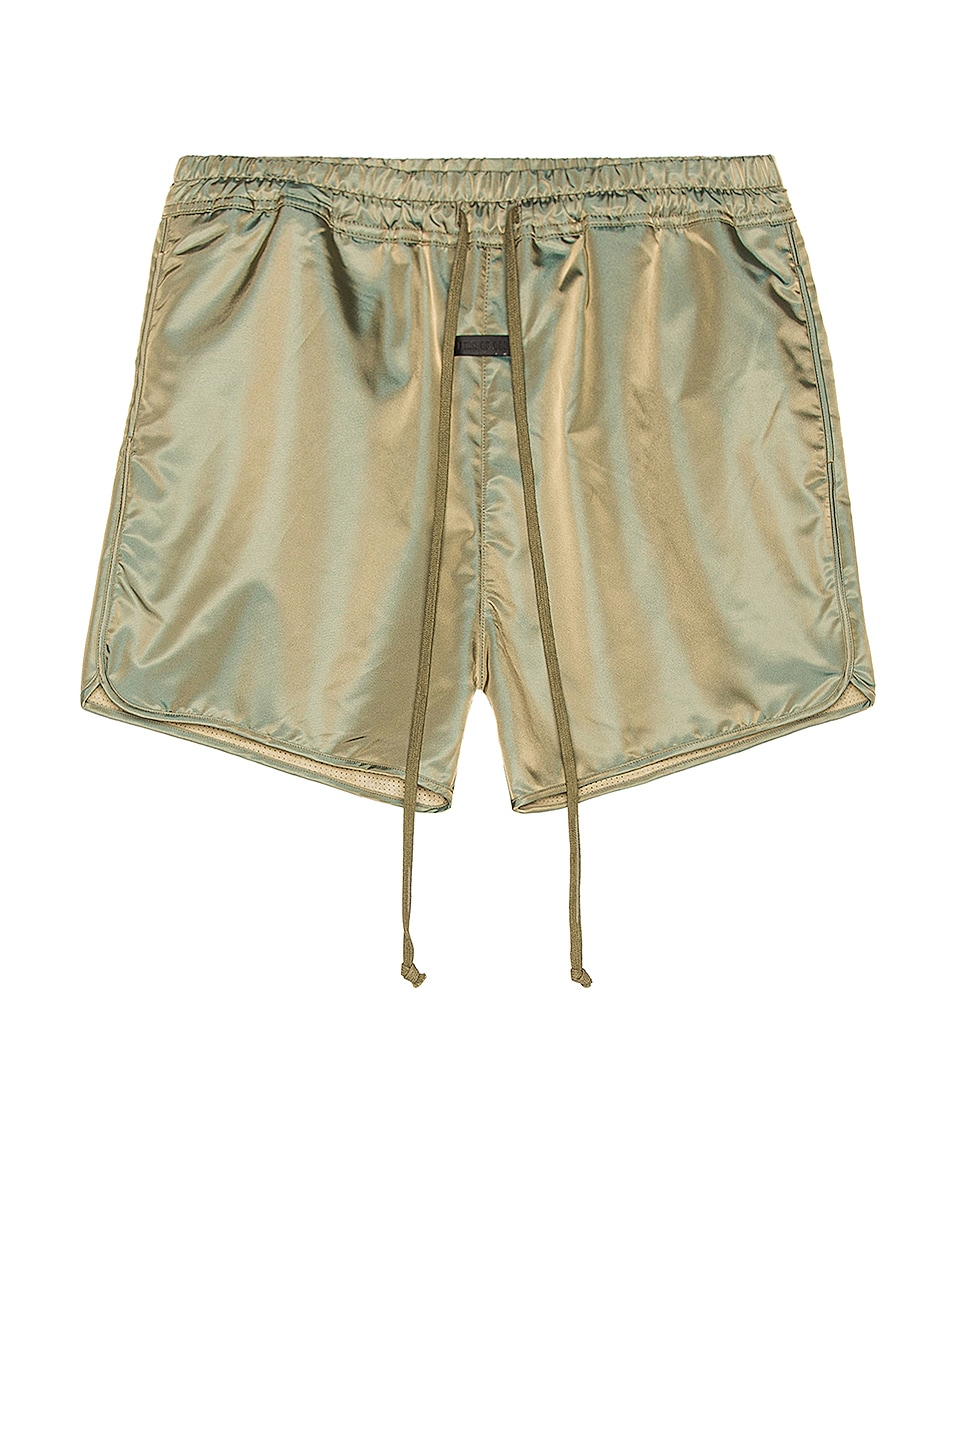 Image 1 of Fear of God Track Short in Green Iridescent